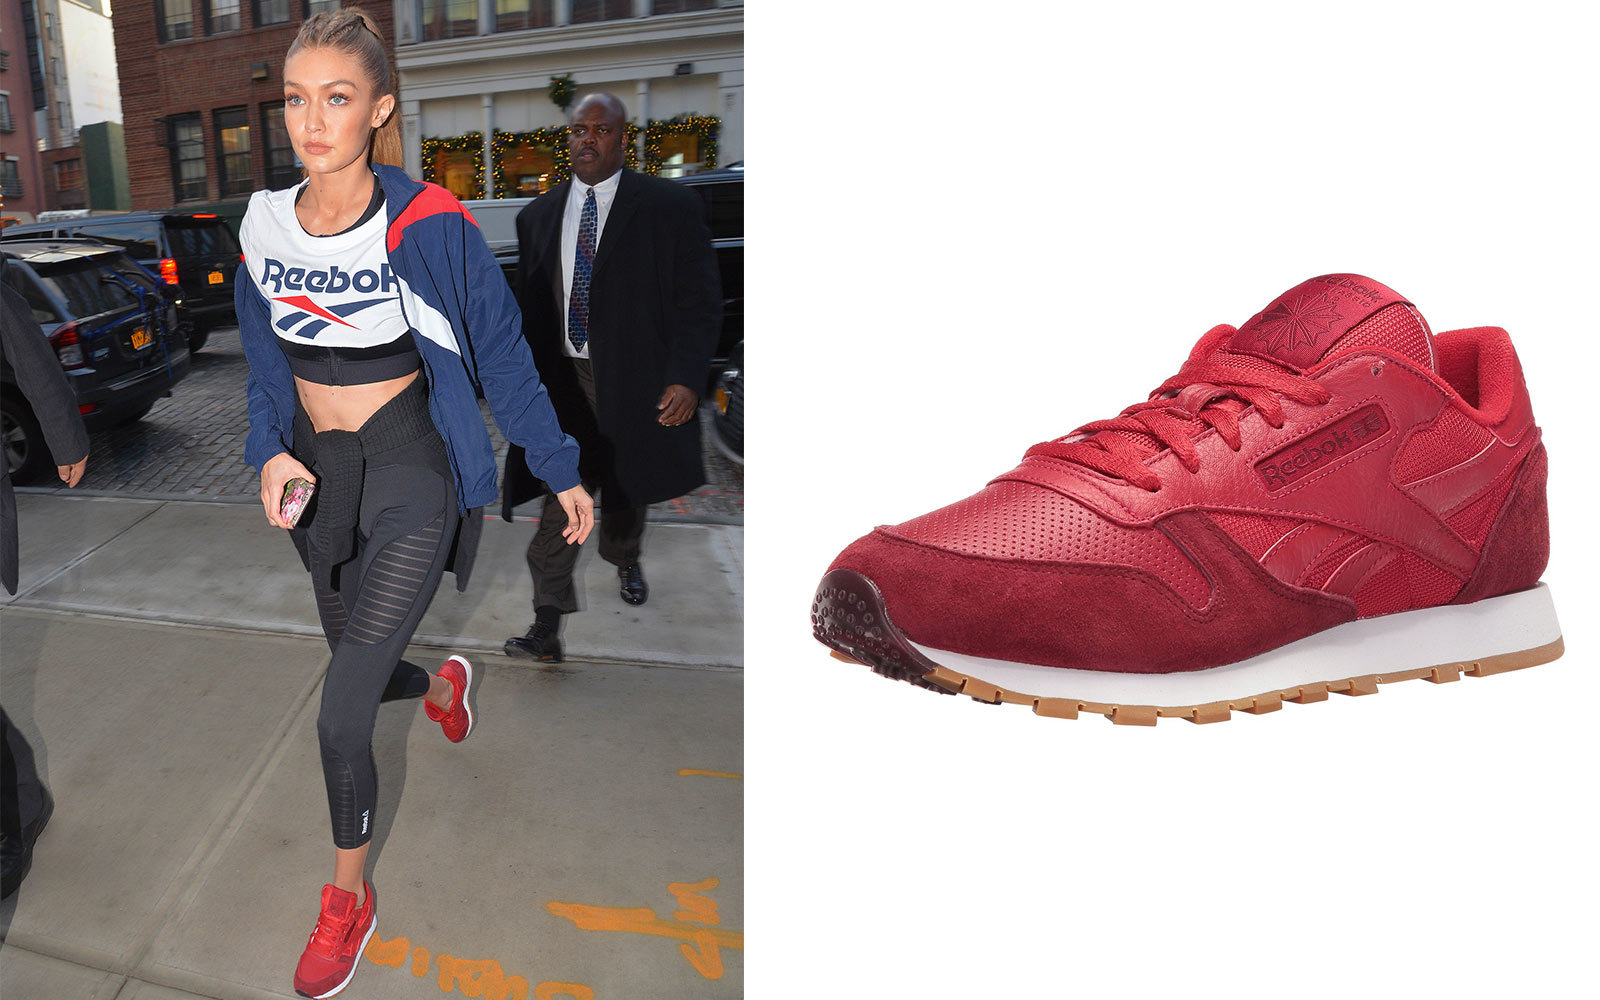 Gigi Hadid in Reebok sneakers